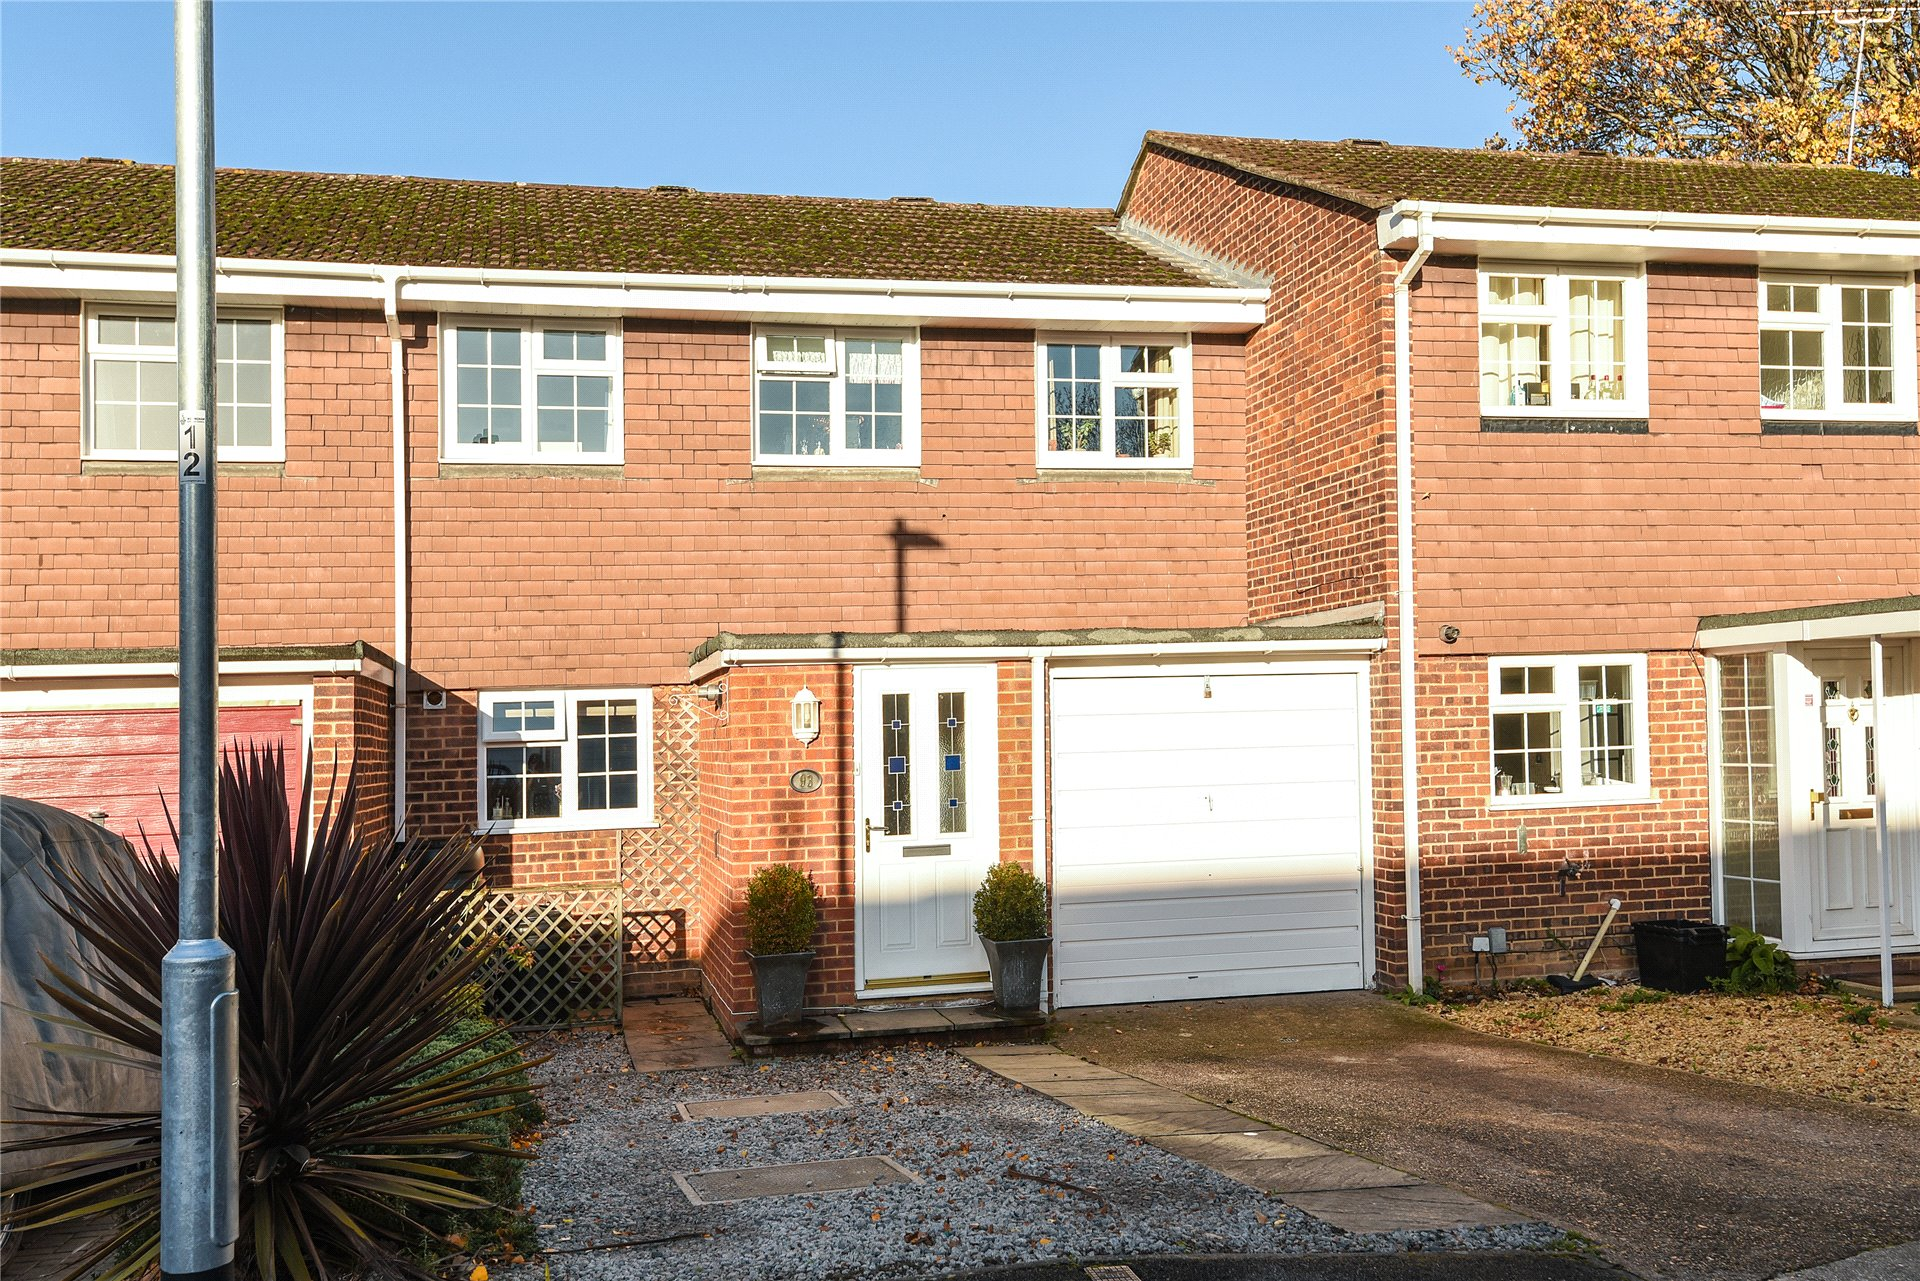 4 Bedrooms Terraced House for sale in Bathurst Road, Winnersh, Berkshire, RG41